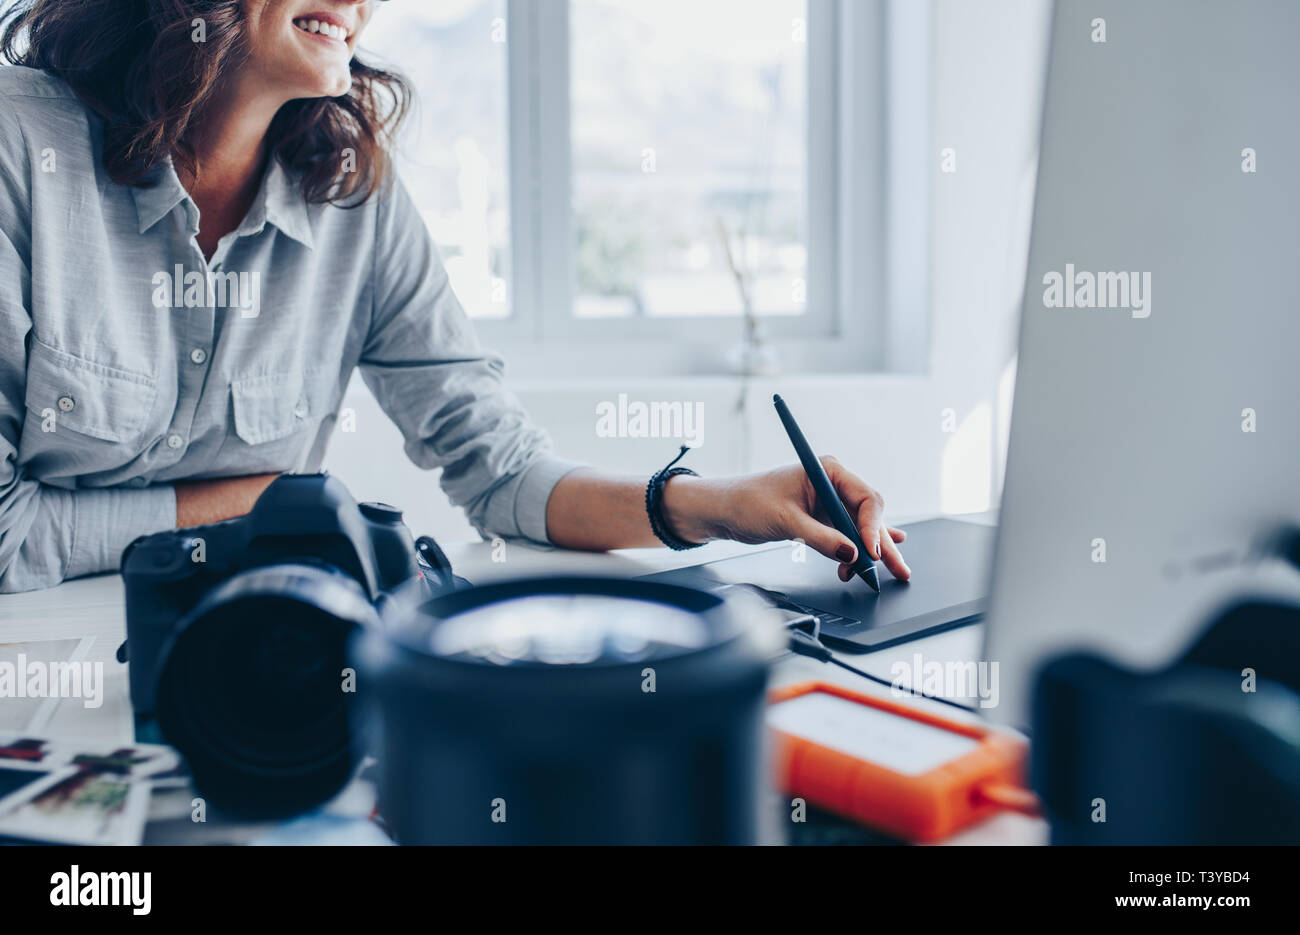 Female photographer working on computer using drawing pad at her desk. Young woman using graphic tablet and drawing pen to retouch the images. Stock Photo